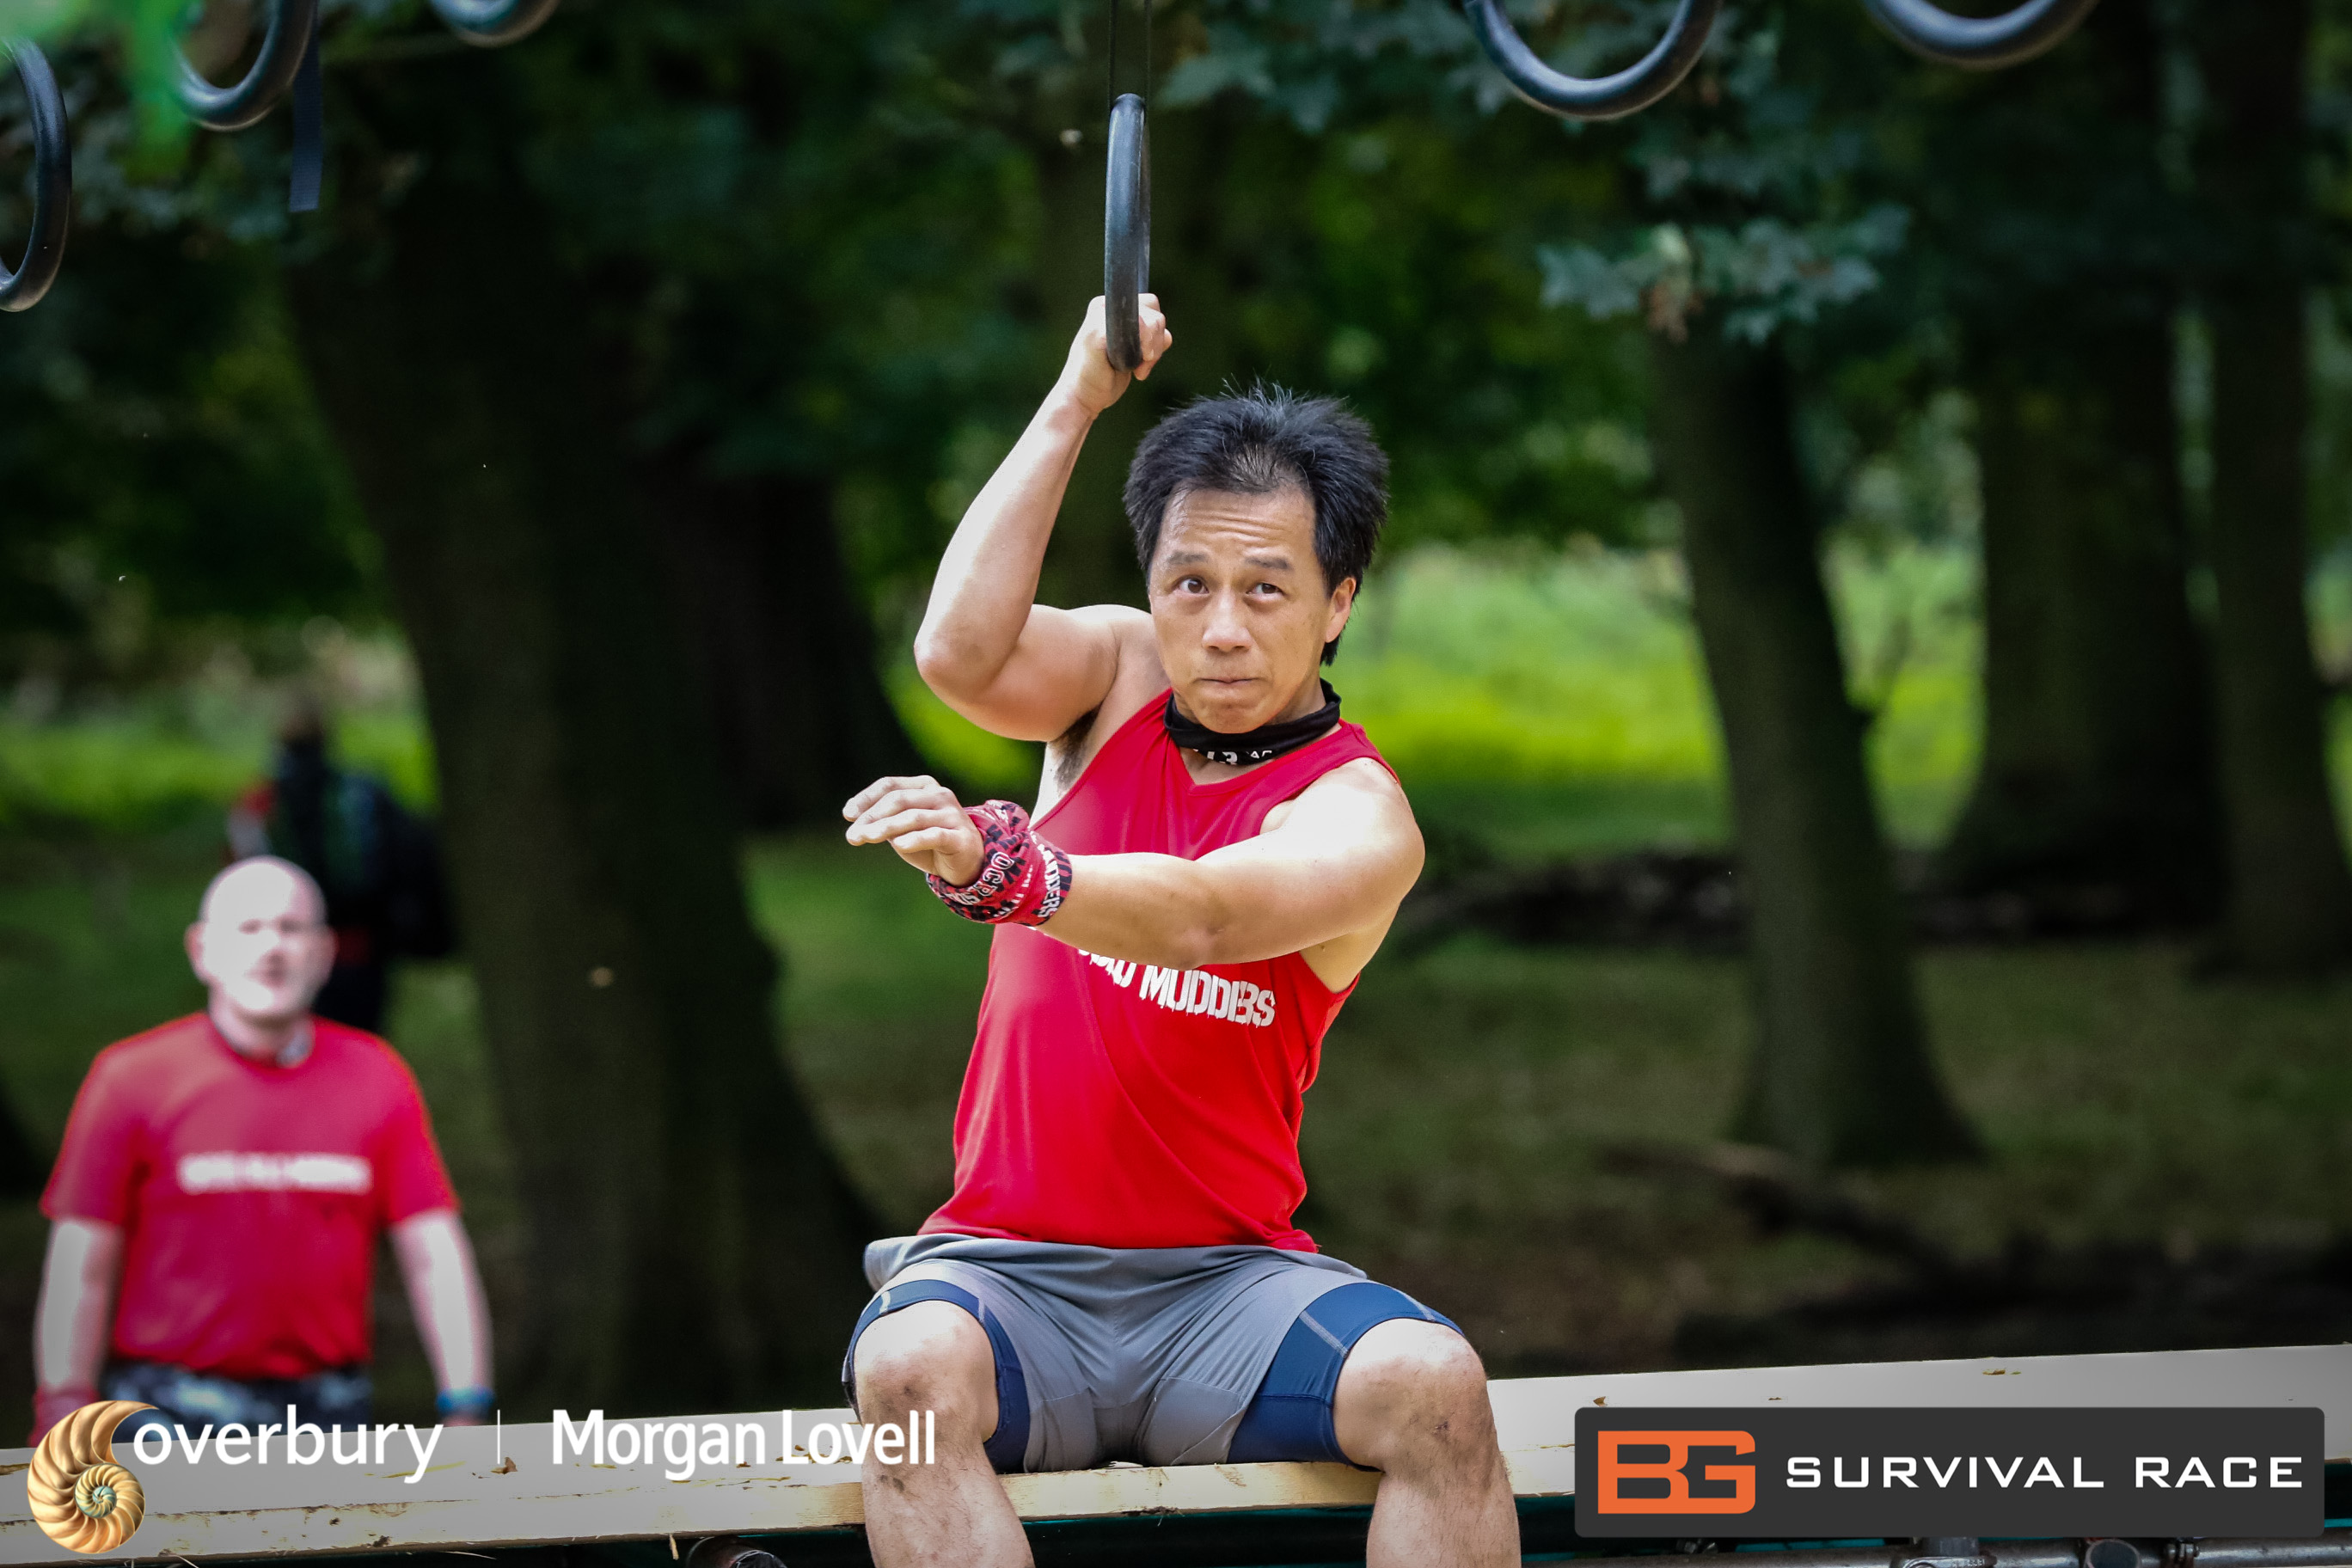 Bear Grylls Survival Race - Rings 2